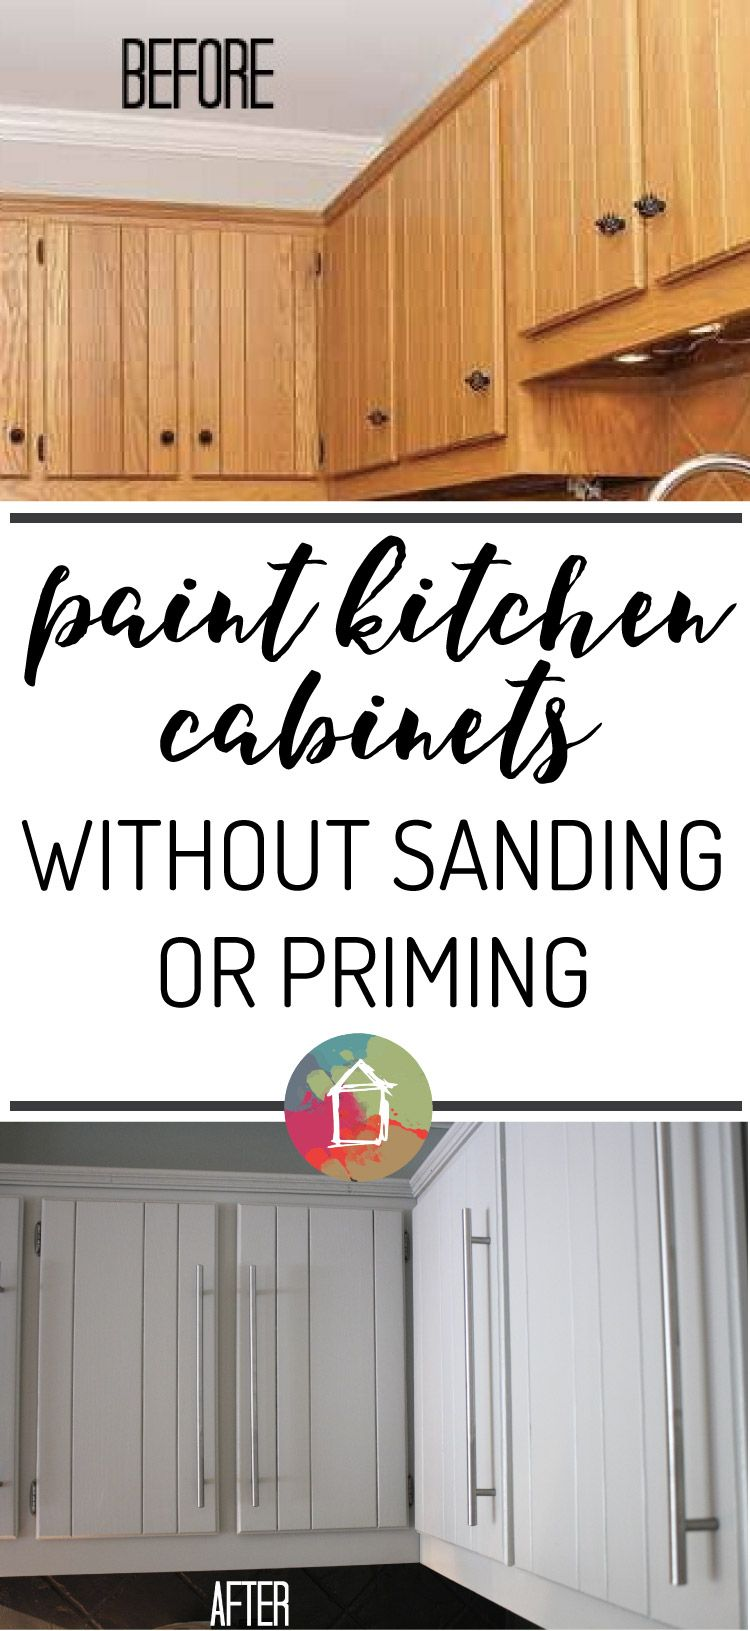 You Can Paint Your Kitchen Cabinets Without Sanding Or Priming That Makes The Project Totally Doable I T Wait To Try It